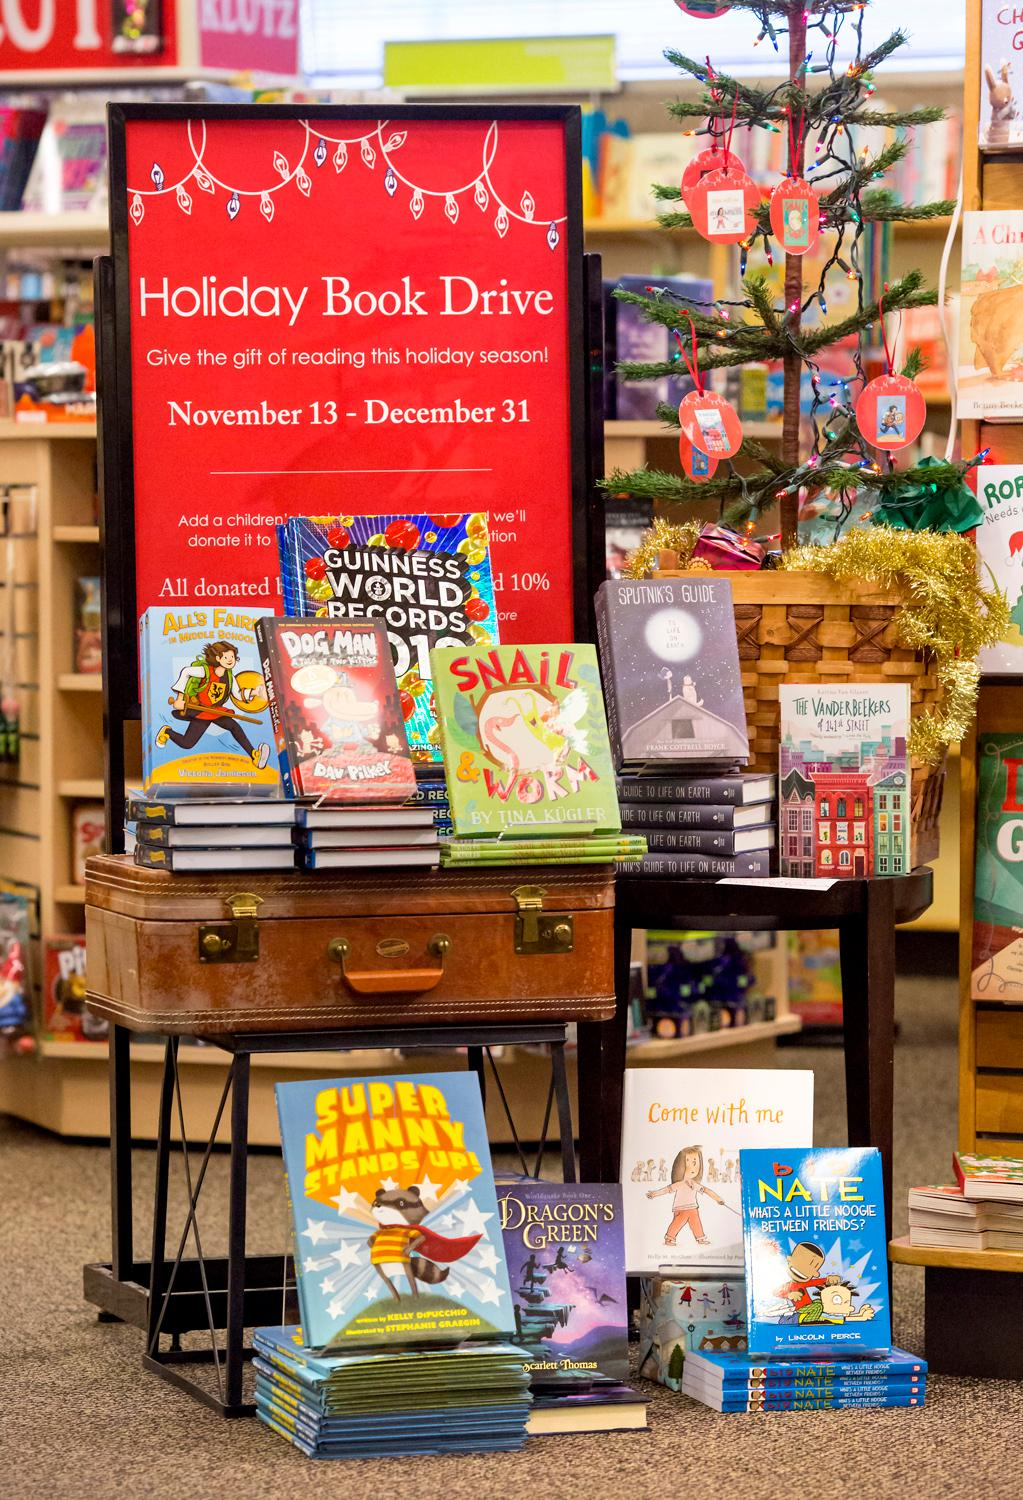 University Book Store is one of the most beloved destinations for Seattle book-lovers of all ages, but we wanted to take a moment to highlight their awesome gift selection this season! Shop for the Husky fans in your life, grab a few stocking stuffers, or treat yourself to some fragrant candles. For more great gifts, head to their Flagship store in the University District or any of their other locations around Puget Sound. If you find something that you love, share it with us by using #MakeSpiritsBright! (Image: Sy Bean / Seattle Refined)